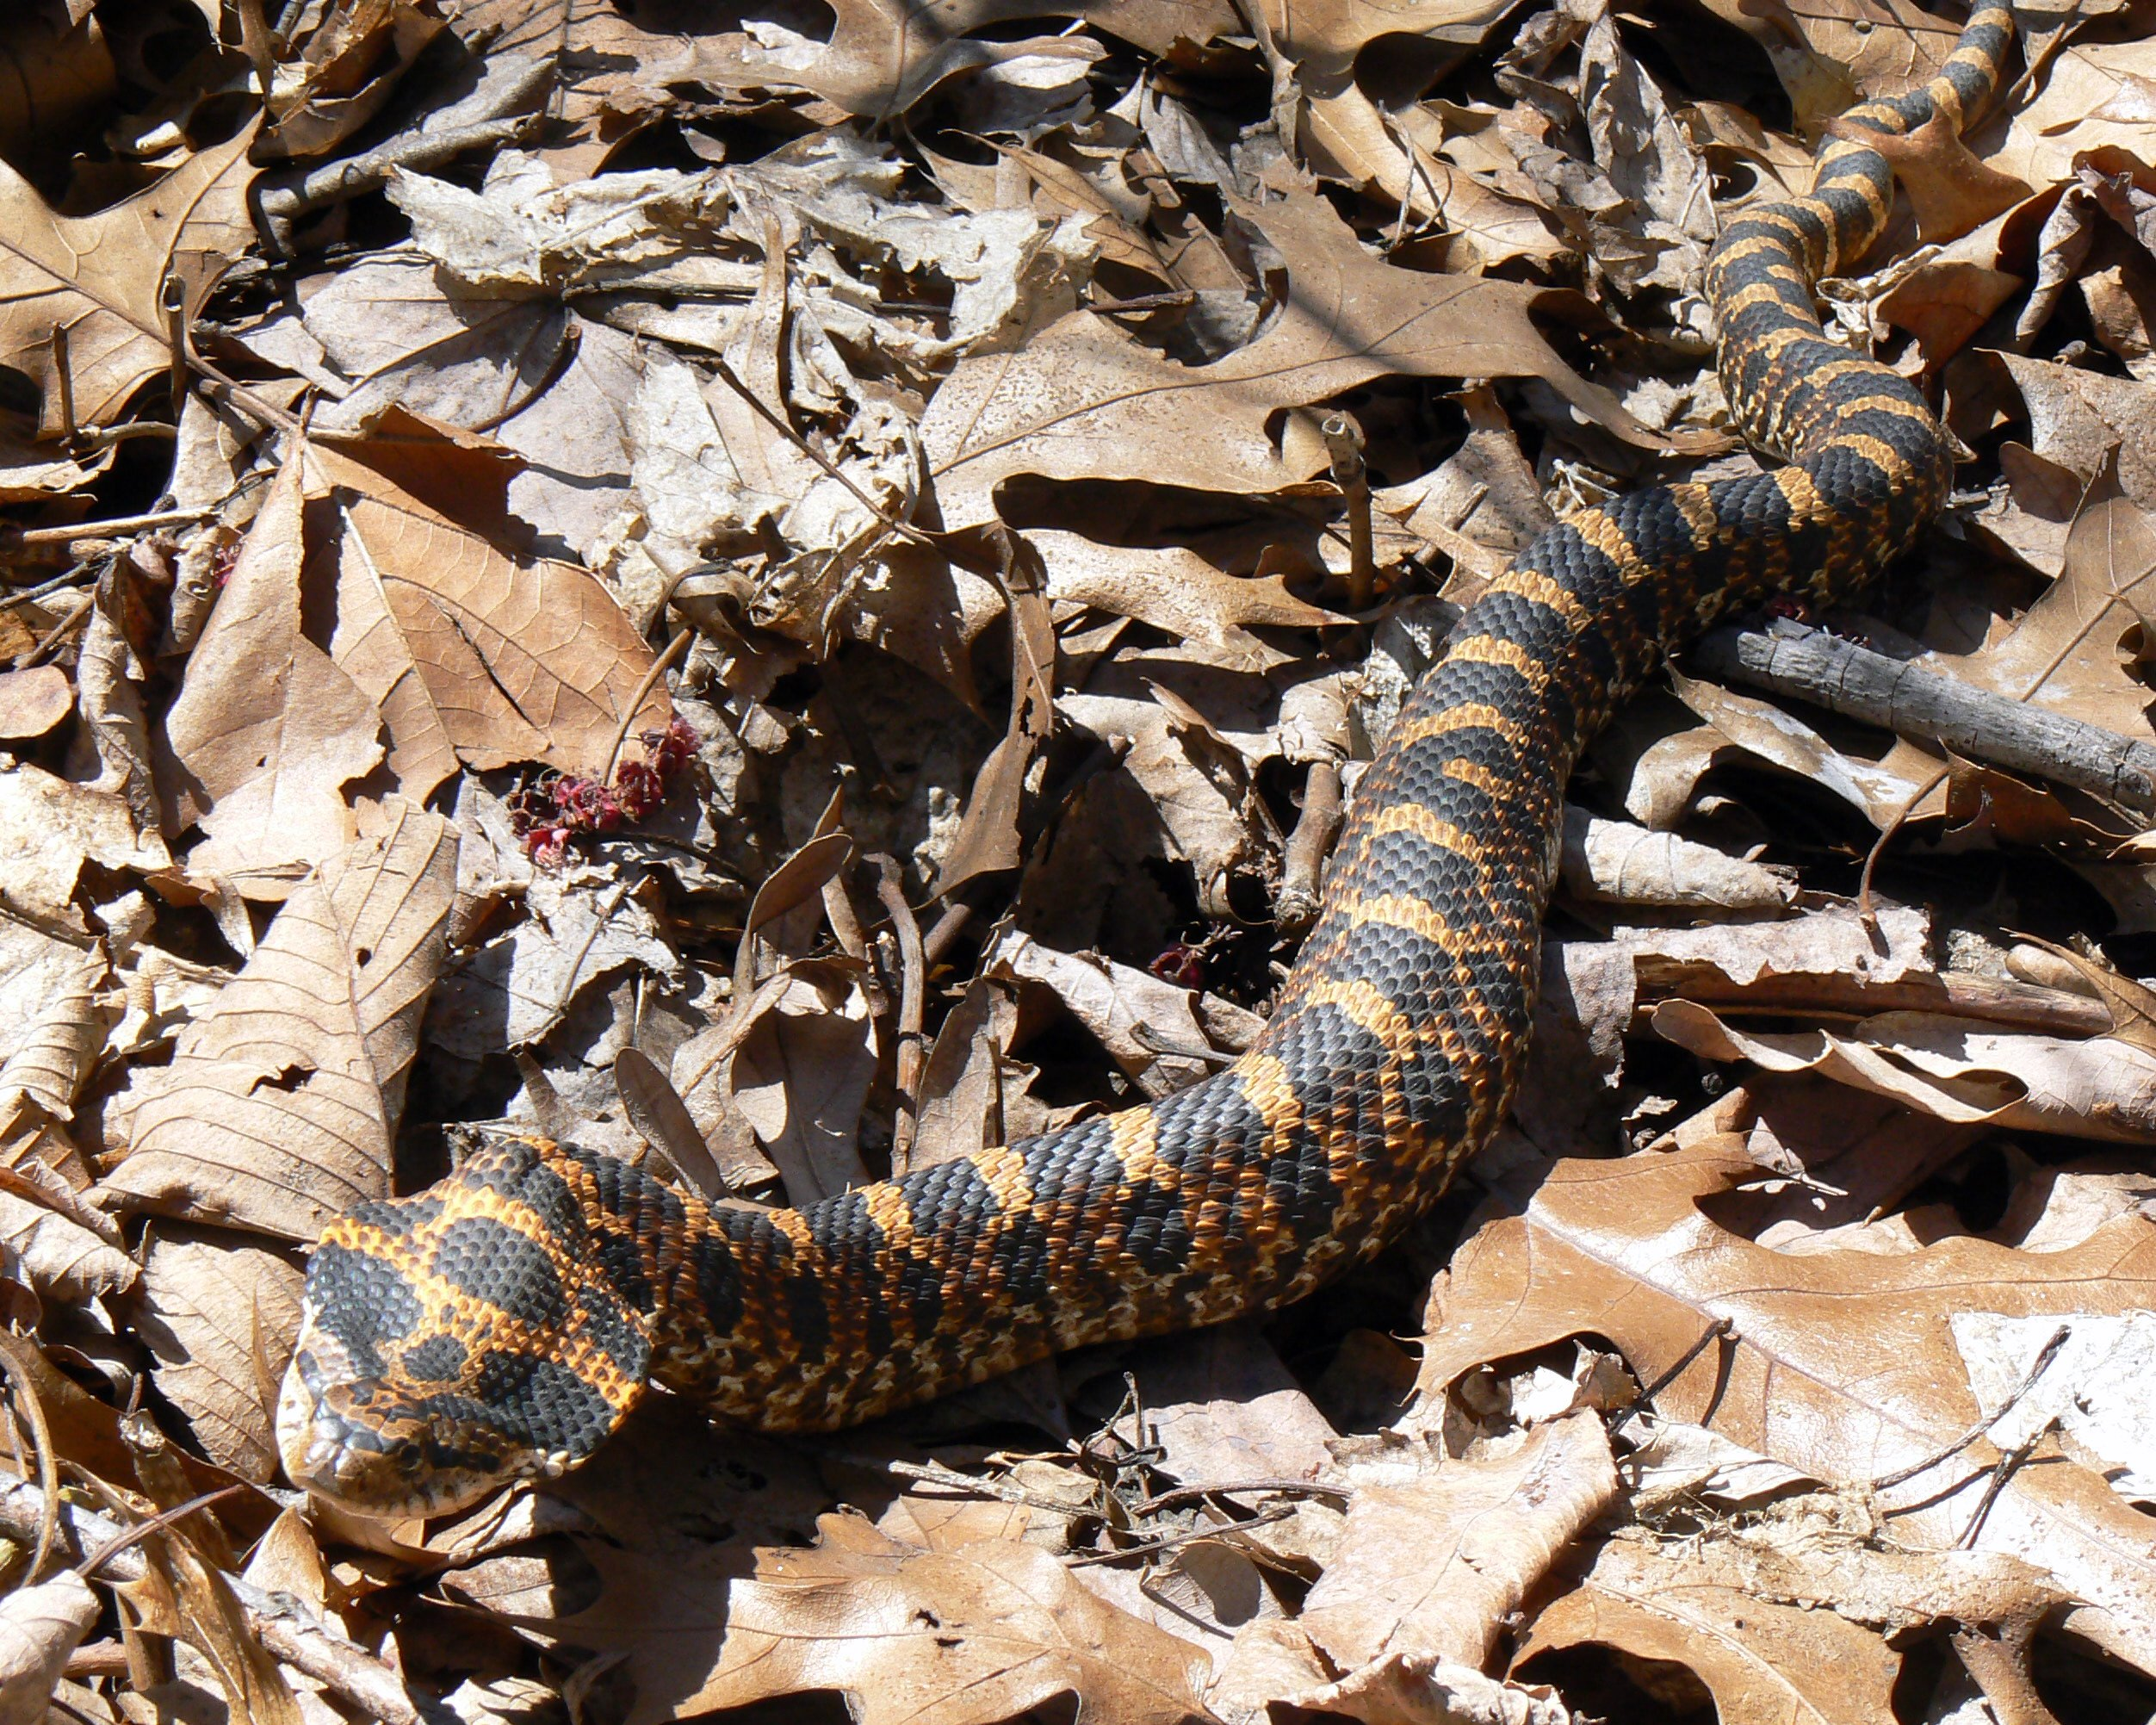 Hognose - Wikipedia